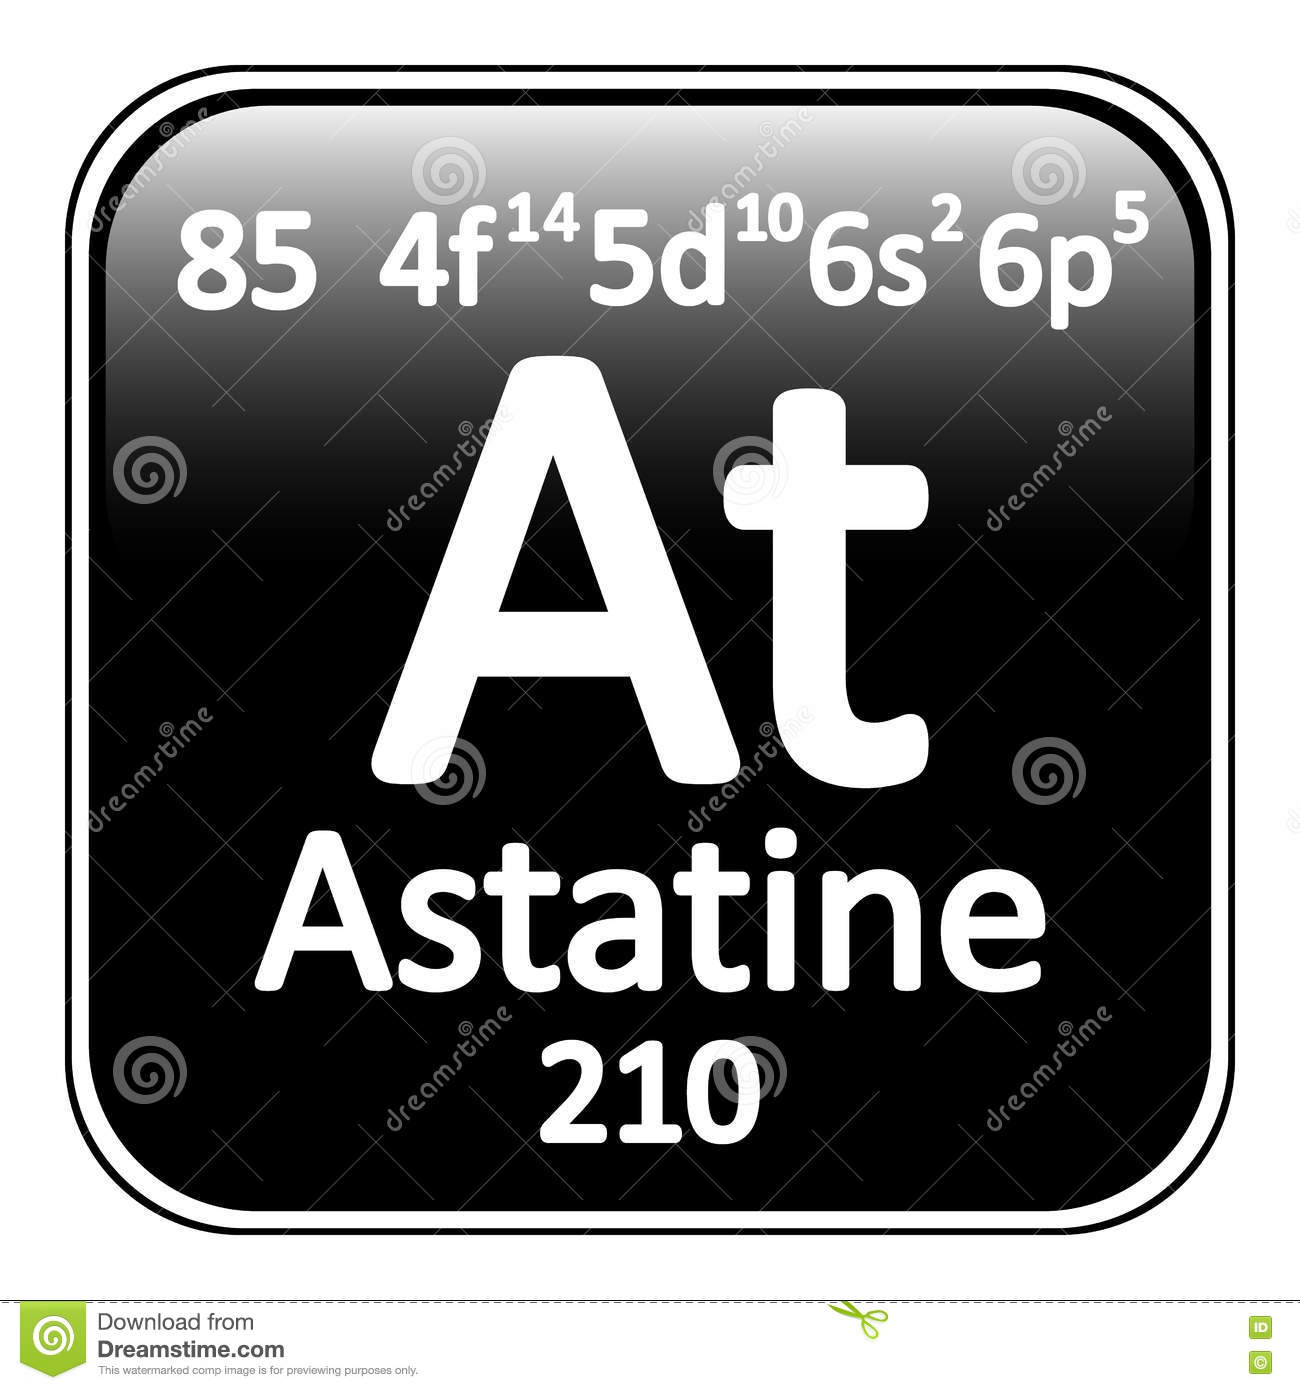 Periodic table element astatine icon stock illustration image royalty free illustration download periodic table element astatine gamestrikefo Image collections